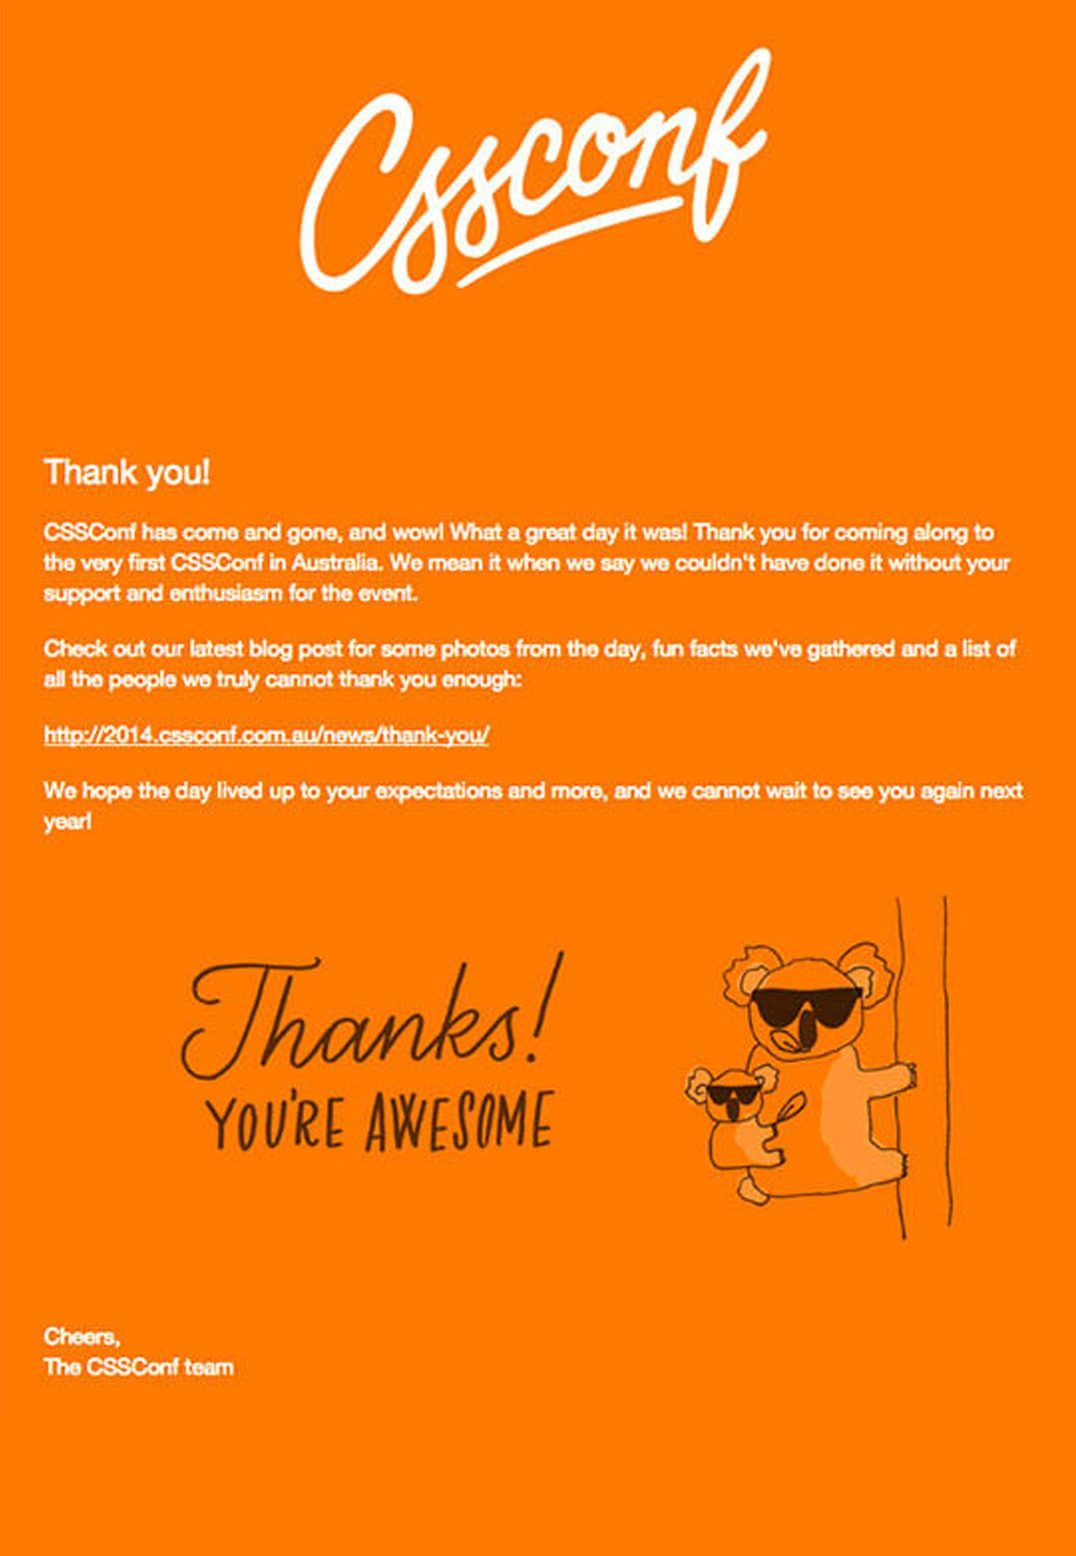 Email Marketing Campaign - Thank You Email | email ...